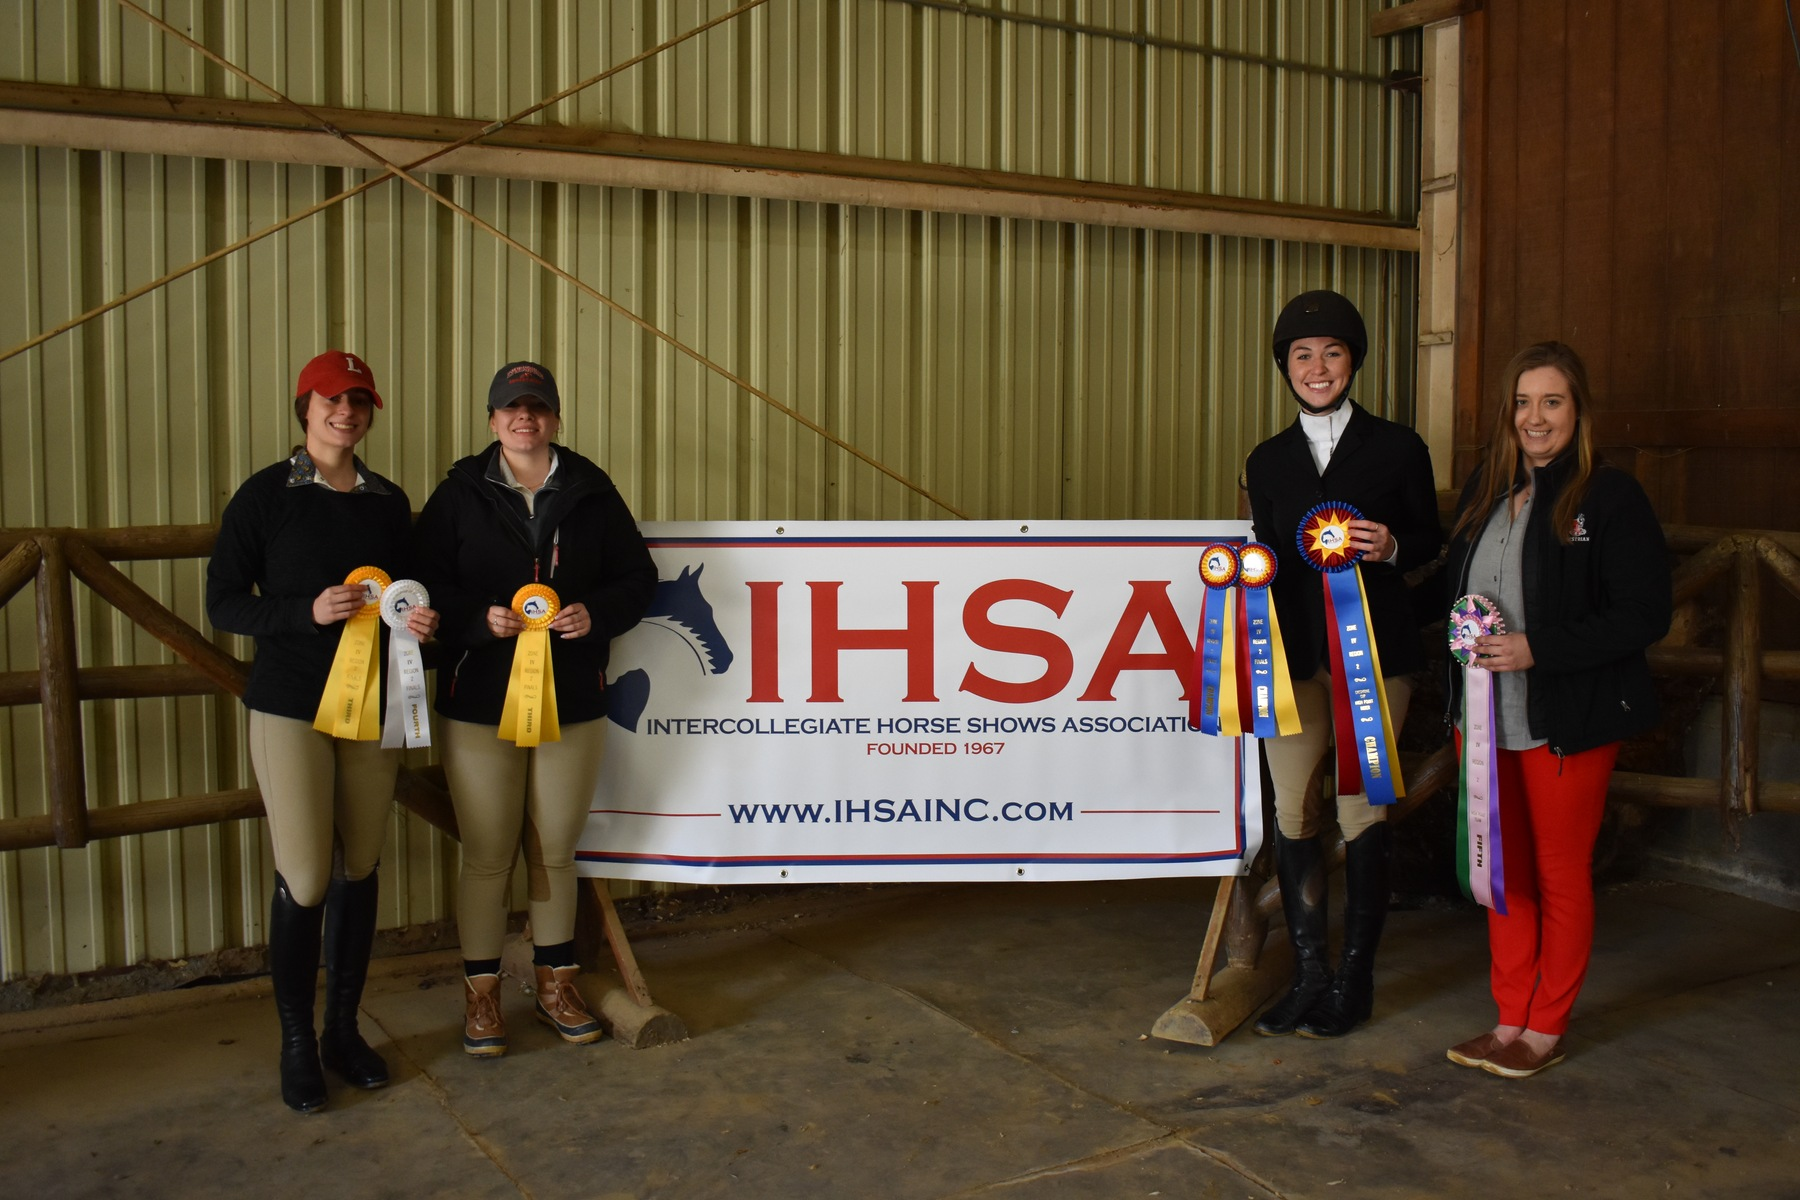 Riders pose by the IHSA sign with their award ribbons.